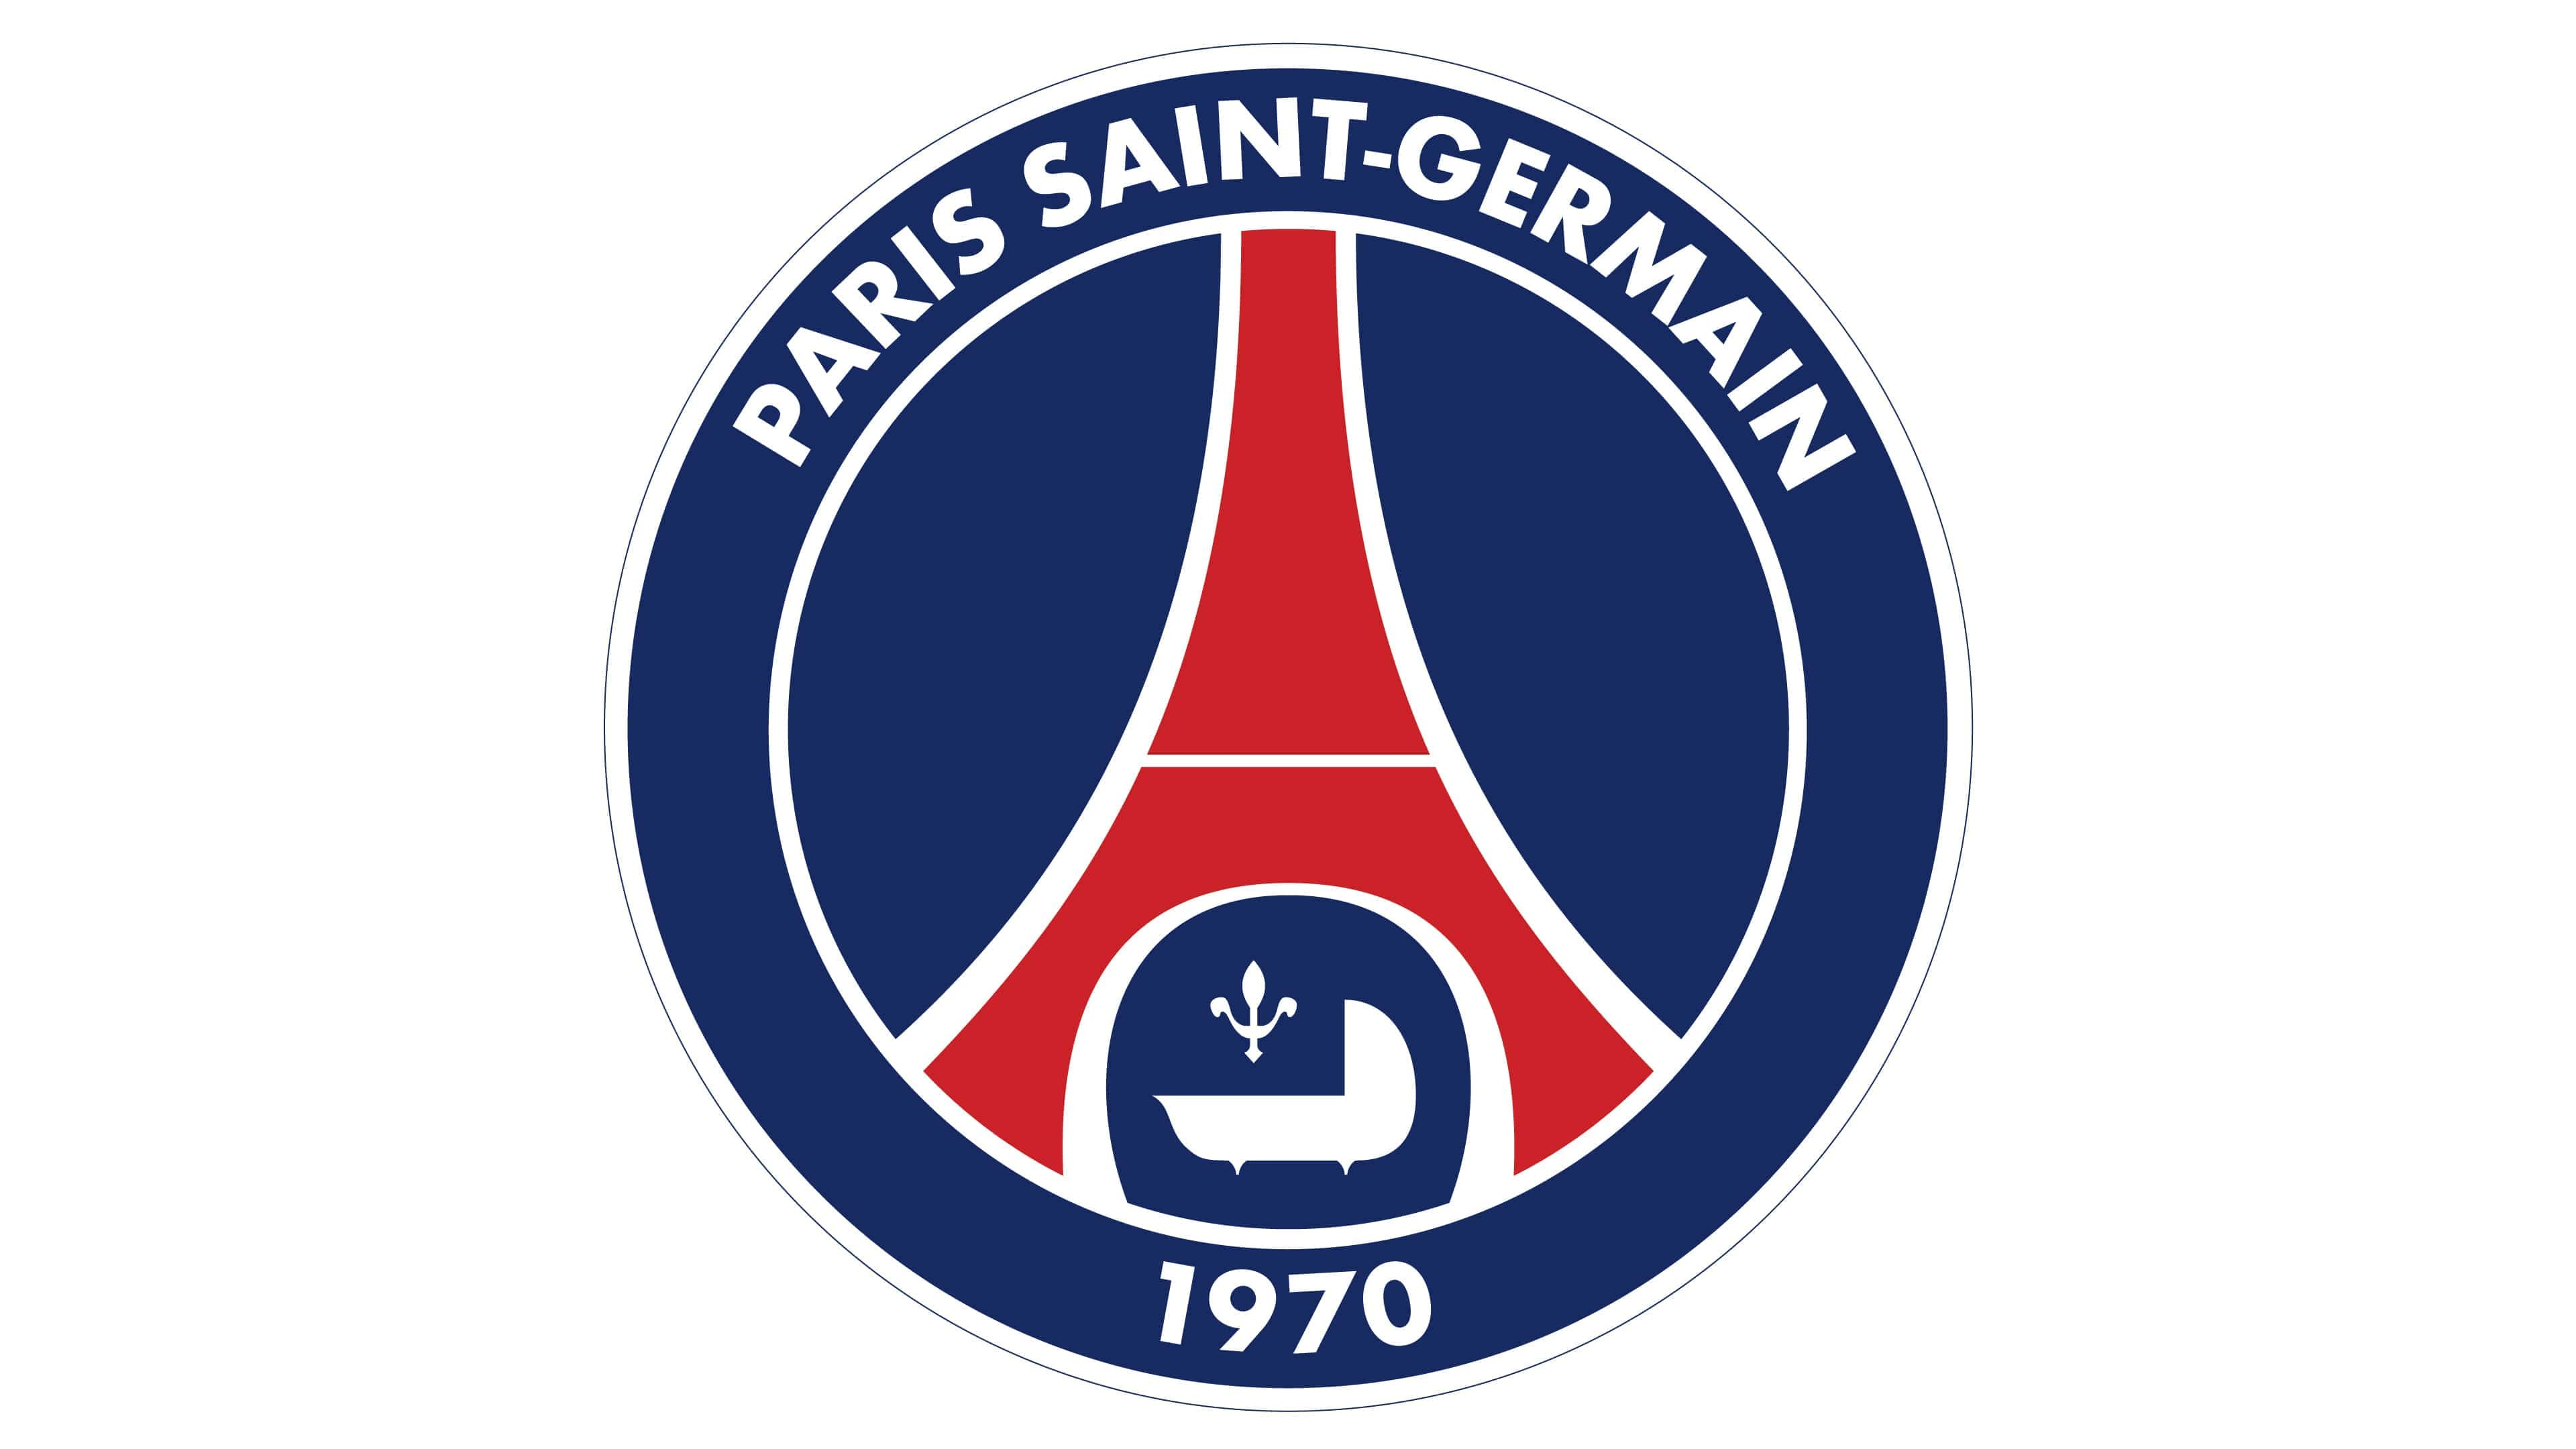 Psg Logo The Most Famous Brands And Company Logos In The World